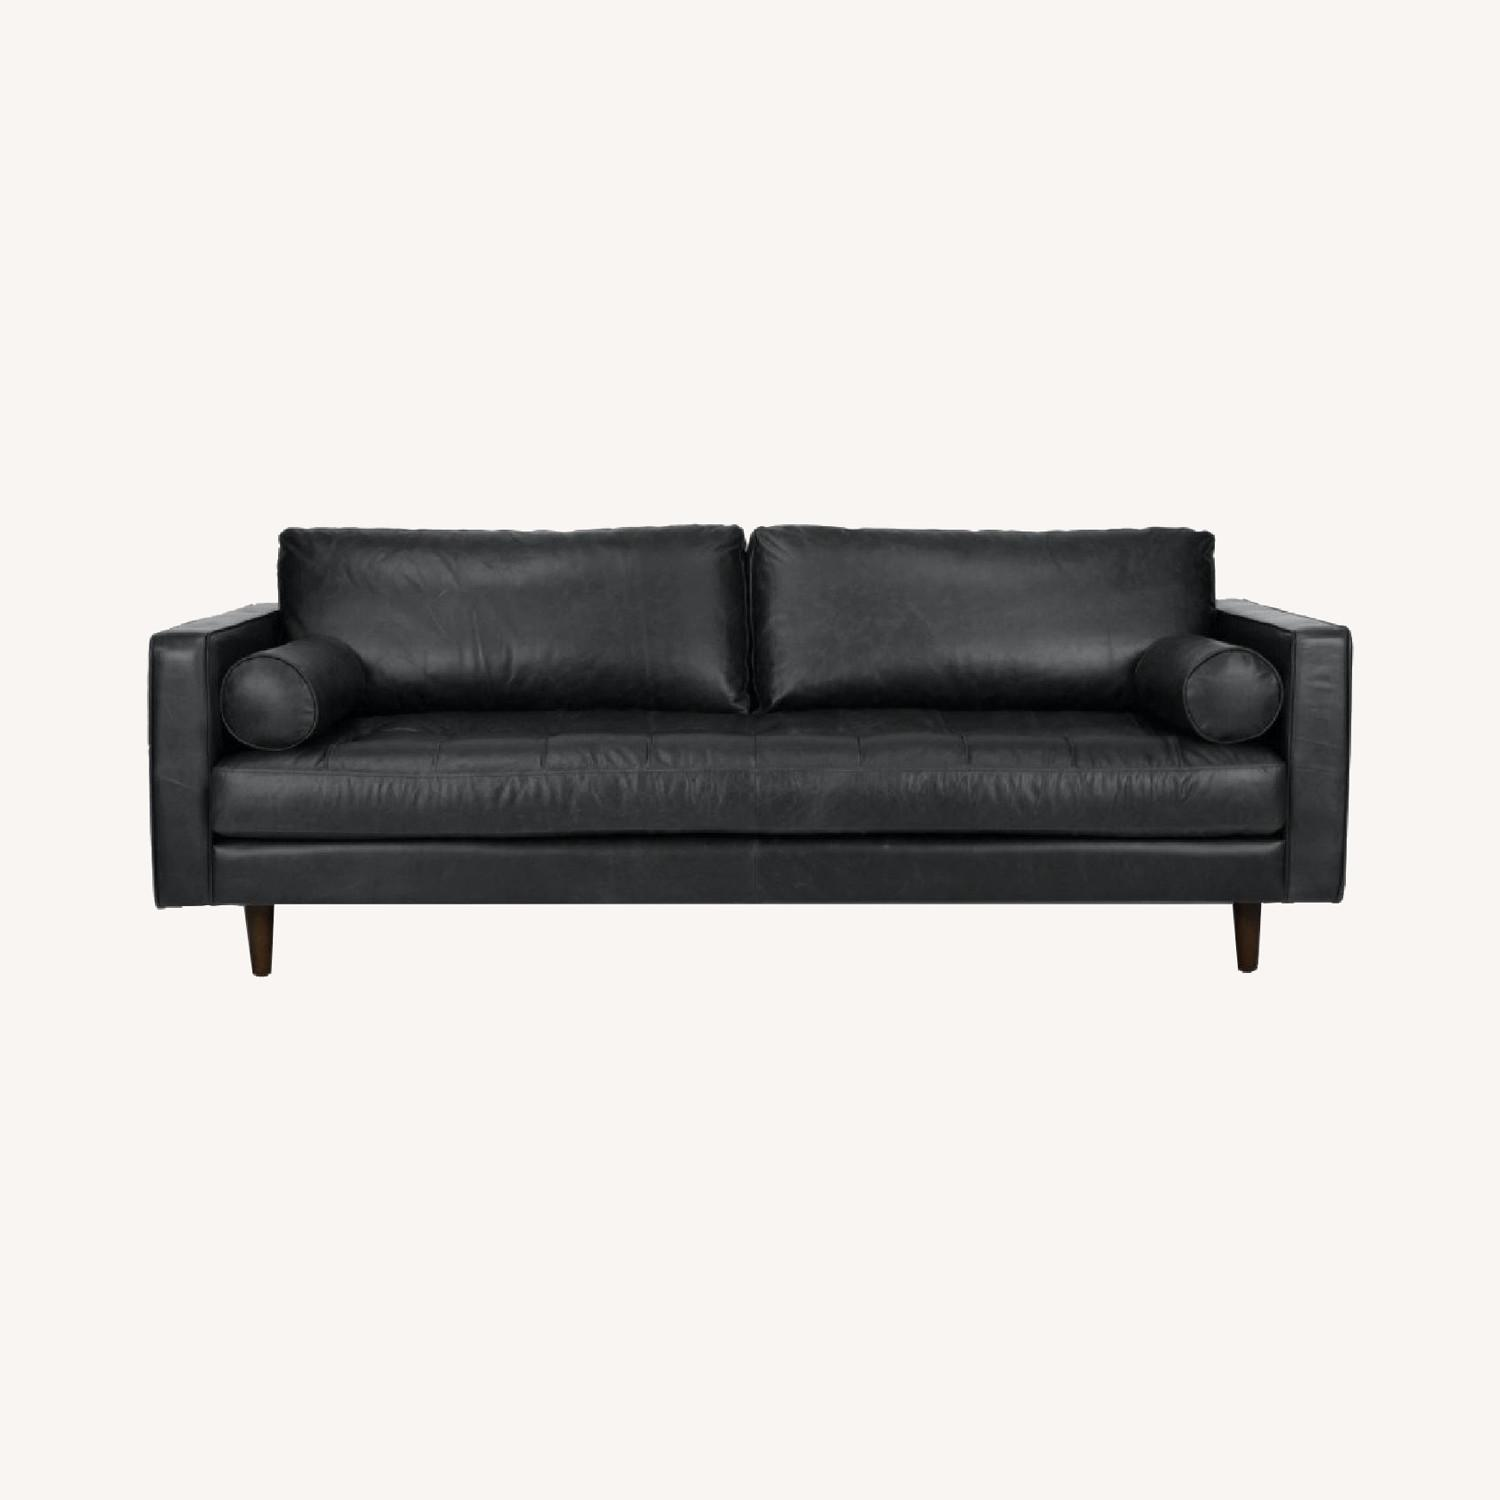 Article Black Leather Couch - image-0